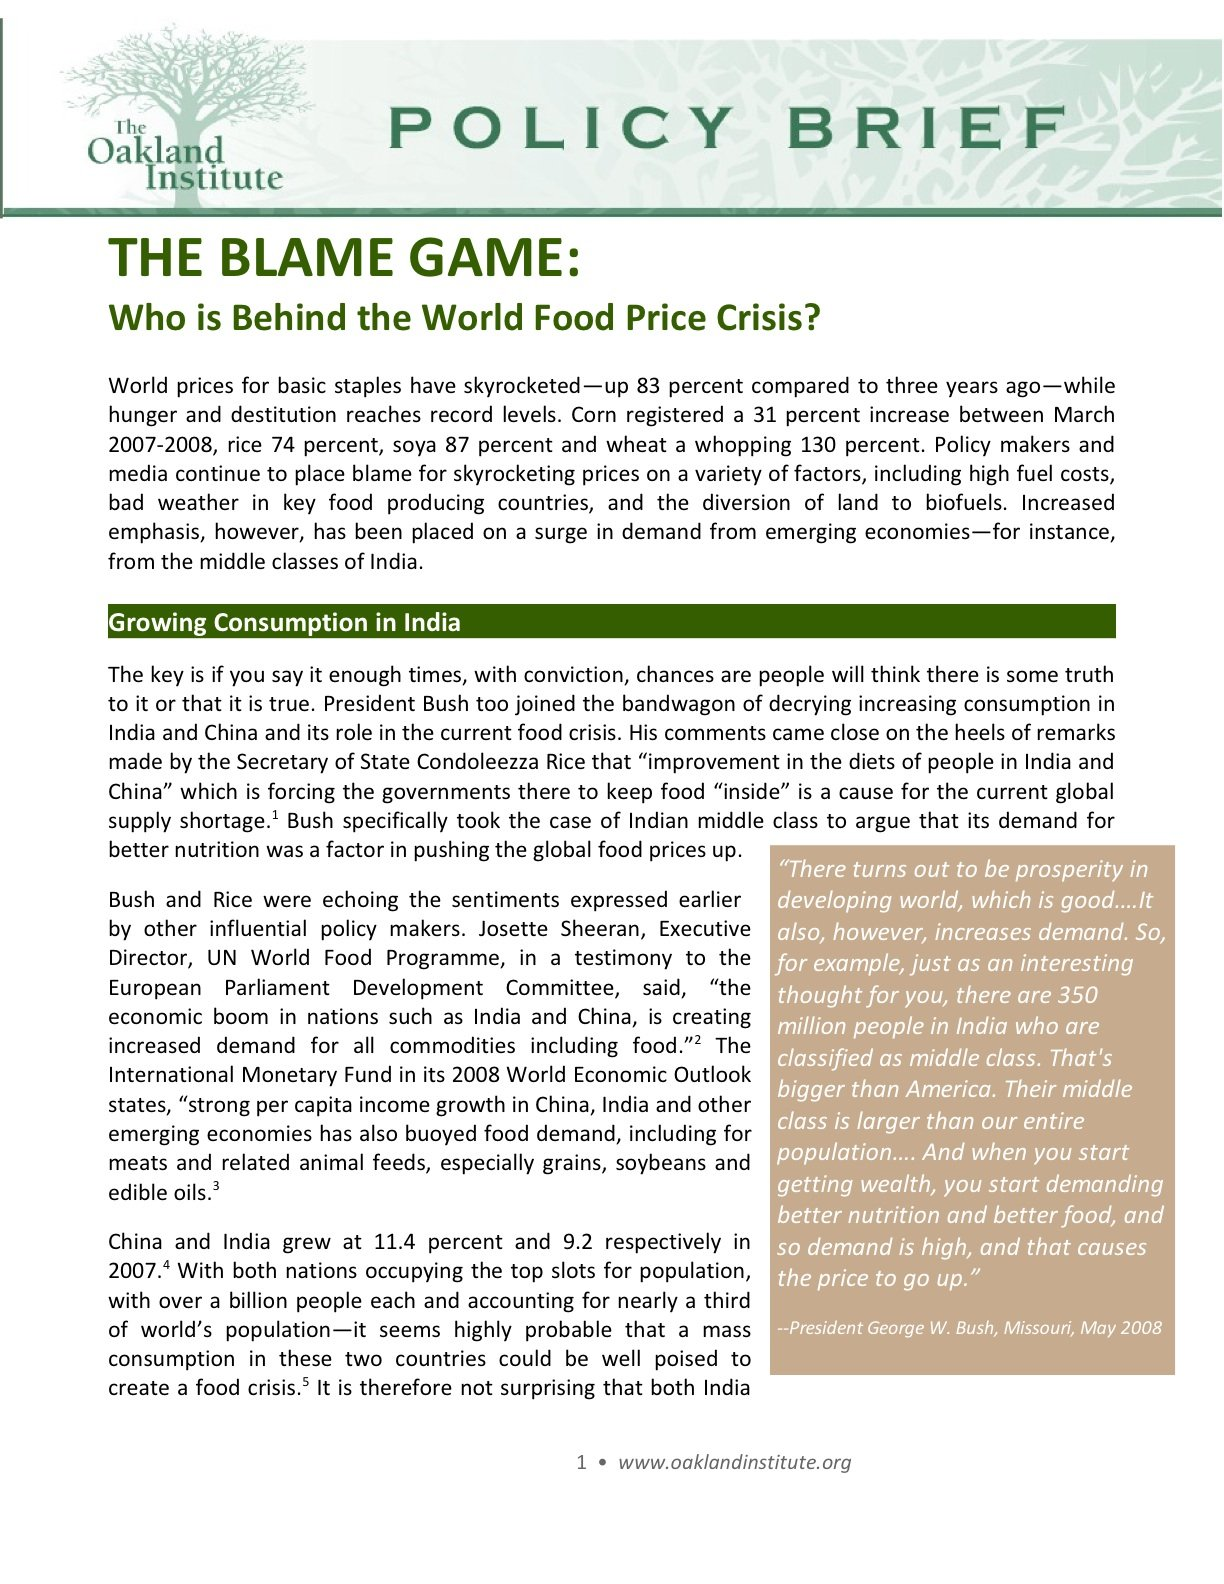 The Blame Game: Who is Behind the World Food Price Crisis